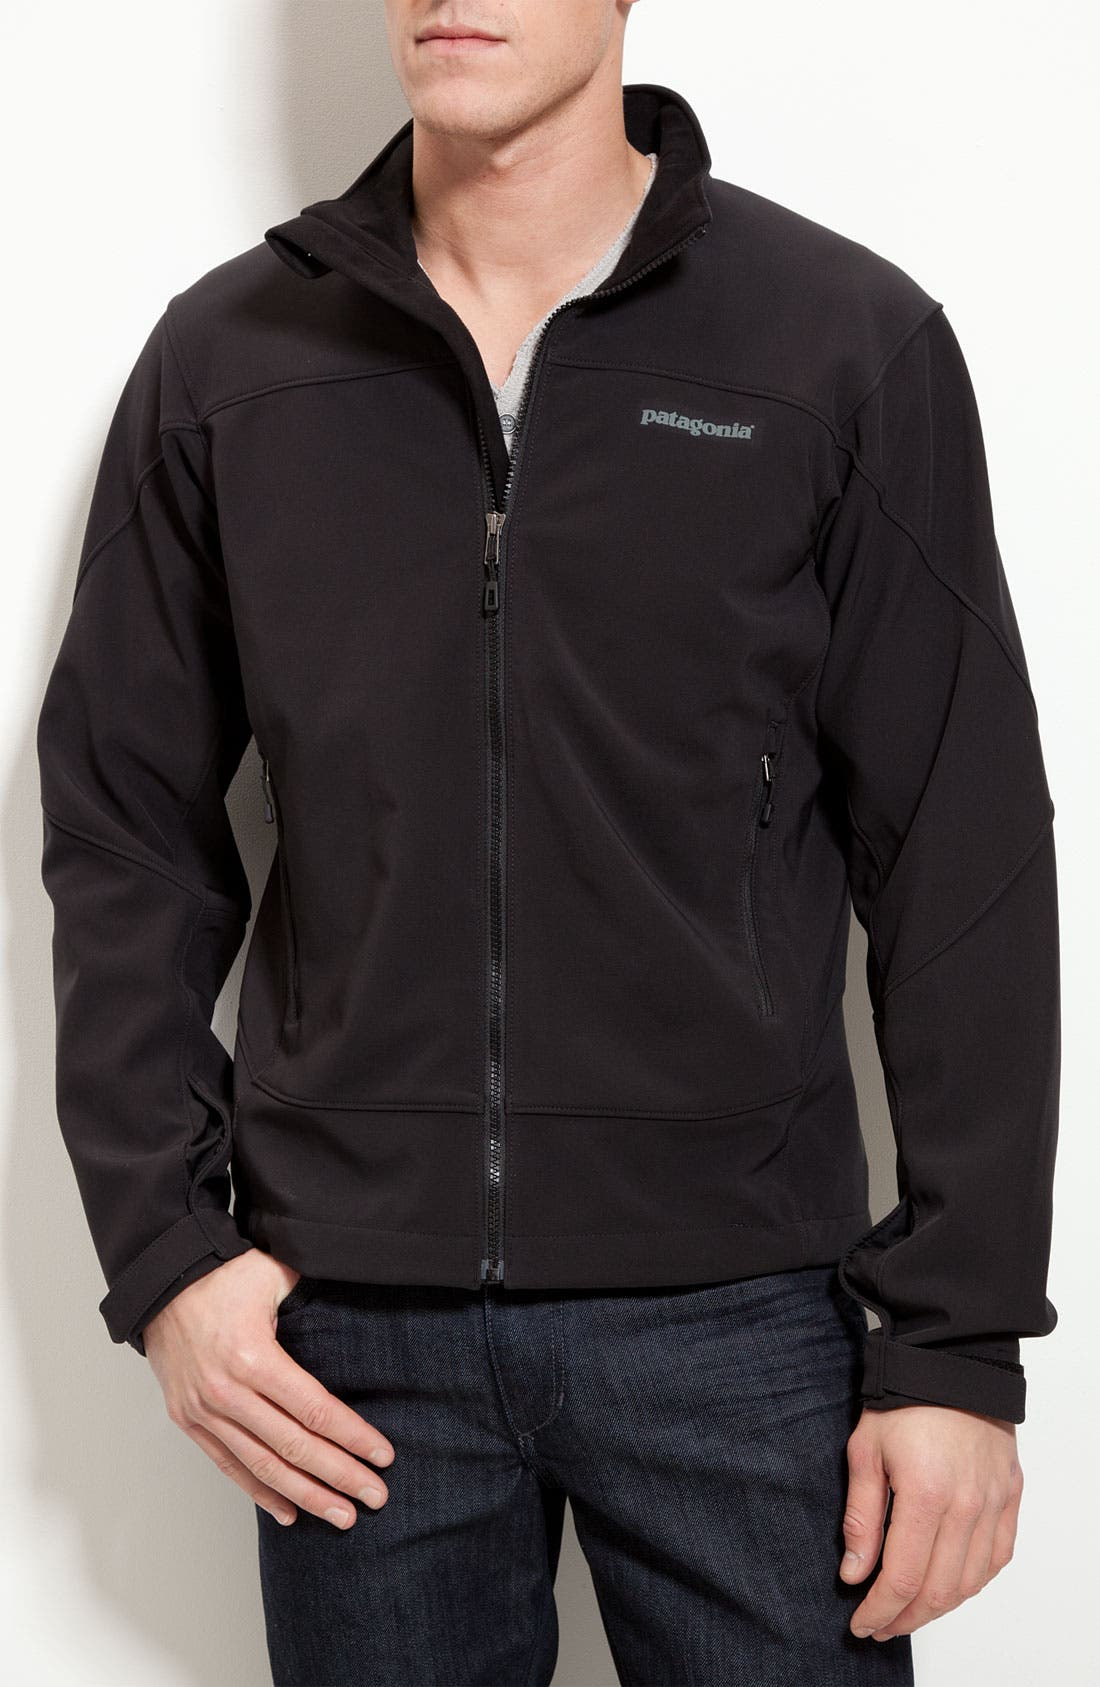 Alternate Image 1 Selected - Patagonia 'Adze' Soft Shell Zip Jacket